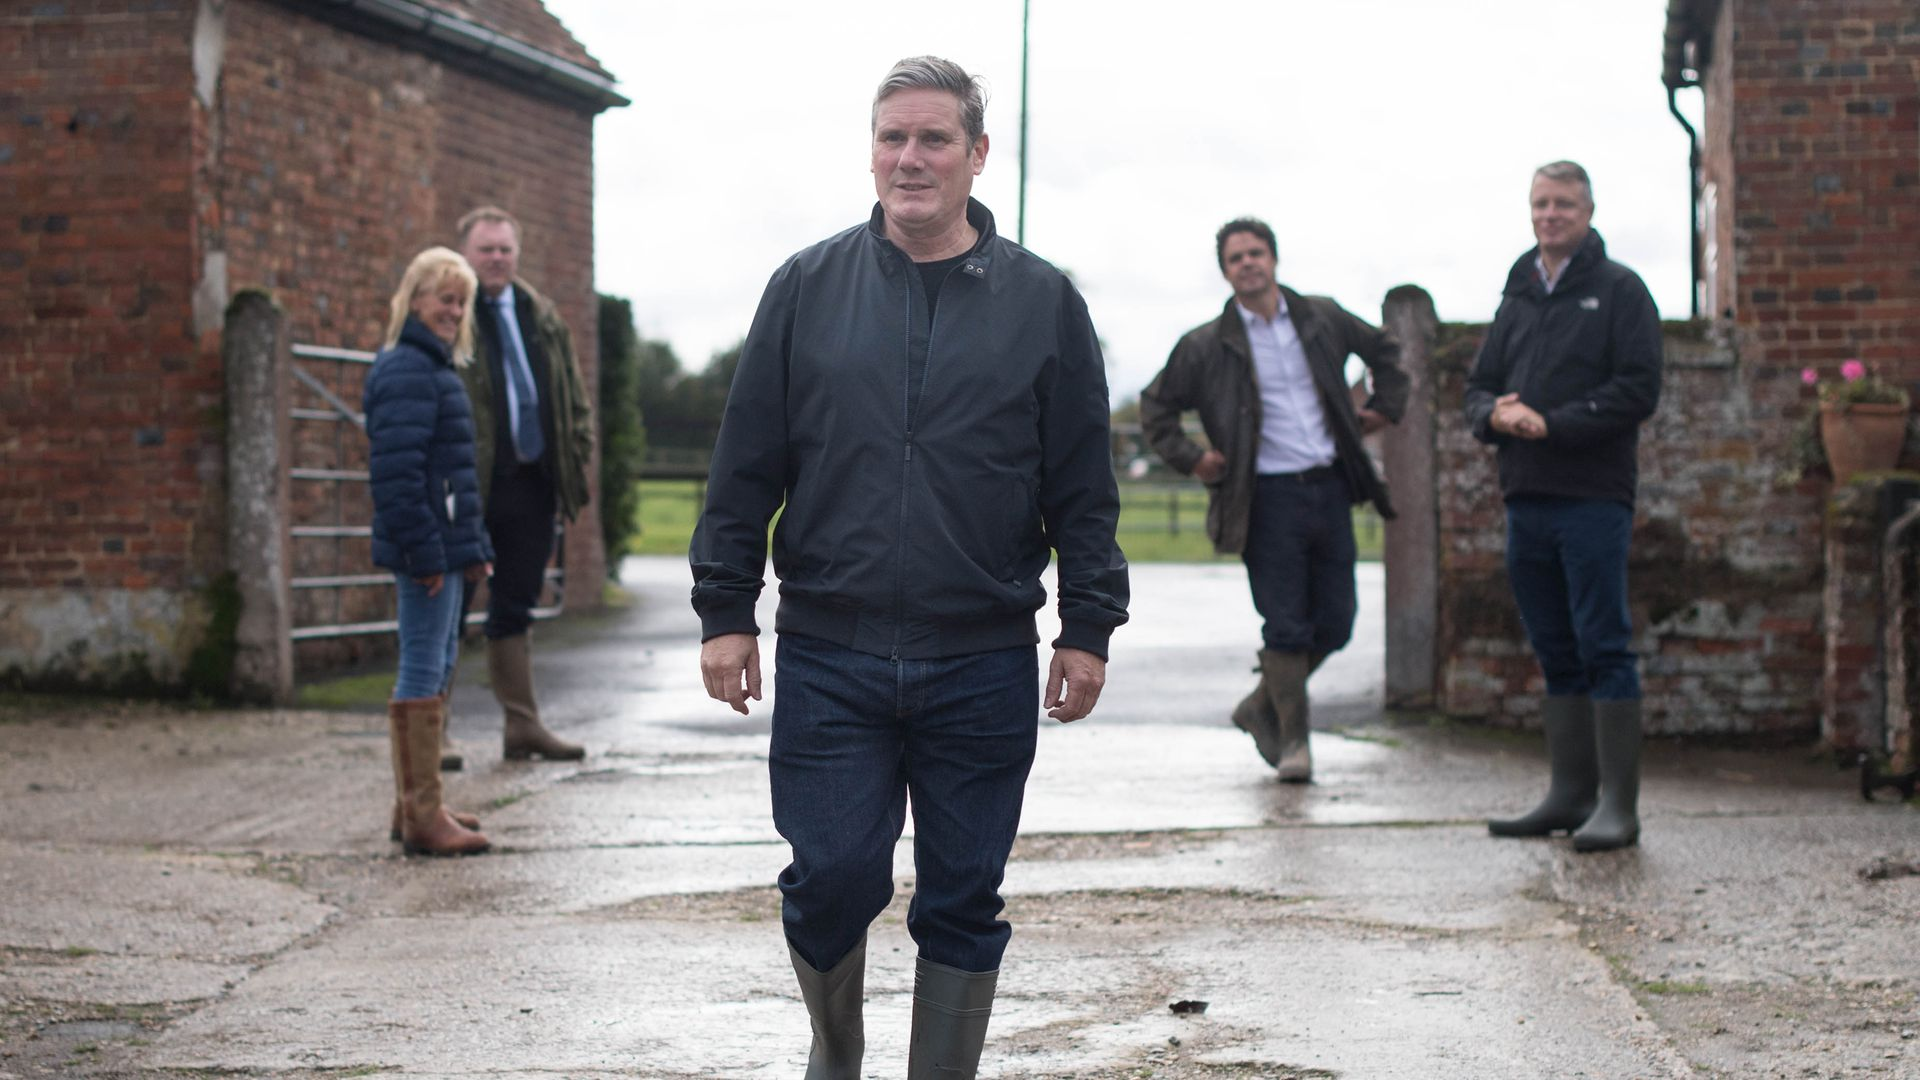 Labour leader Sir Keir Starmer during a visit to National Farmers' Union president Minette Batters' farm in Wiltshire - Credit: PA